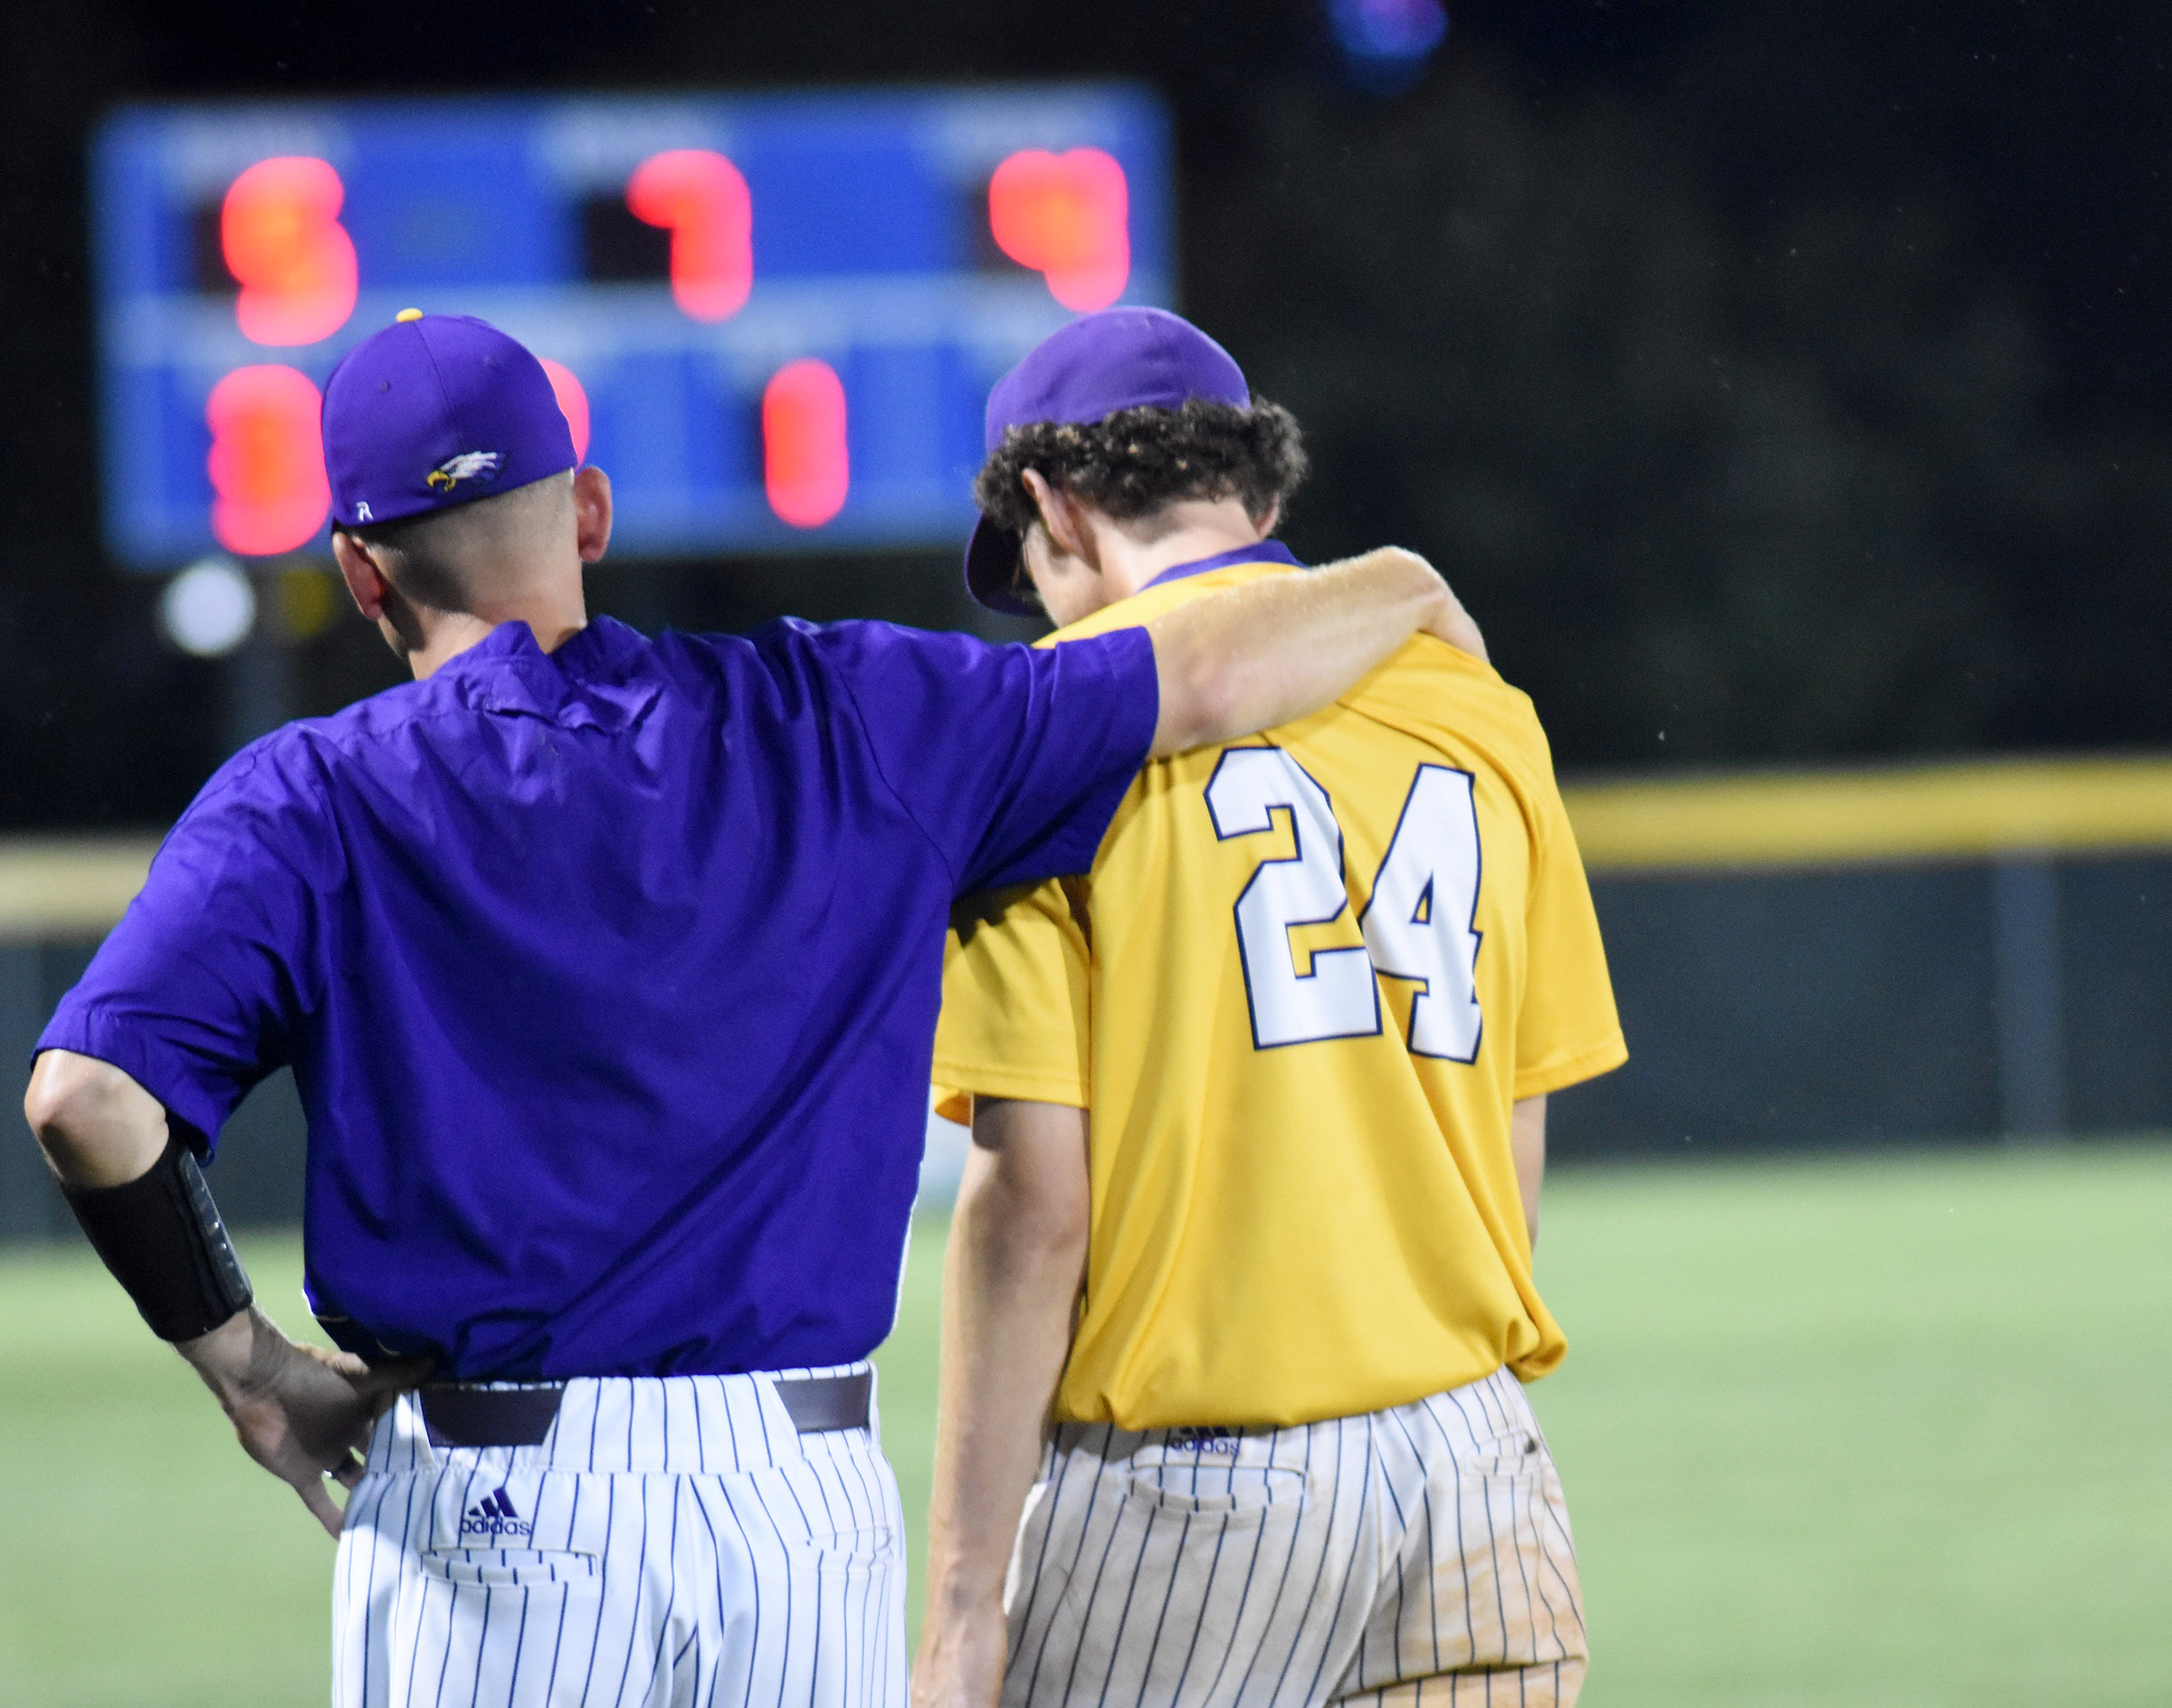 CHS baseball assistant coach Zach Lewis talks with sophomore Brennon Wheeler after the game.